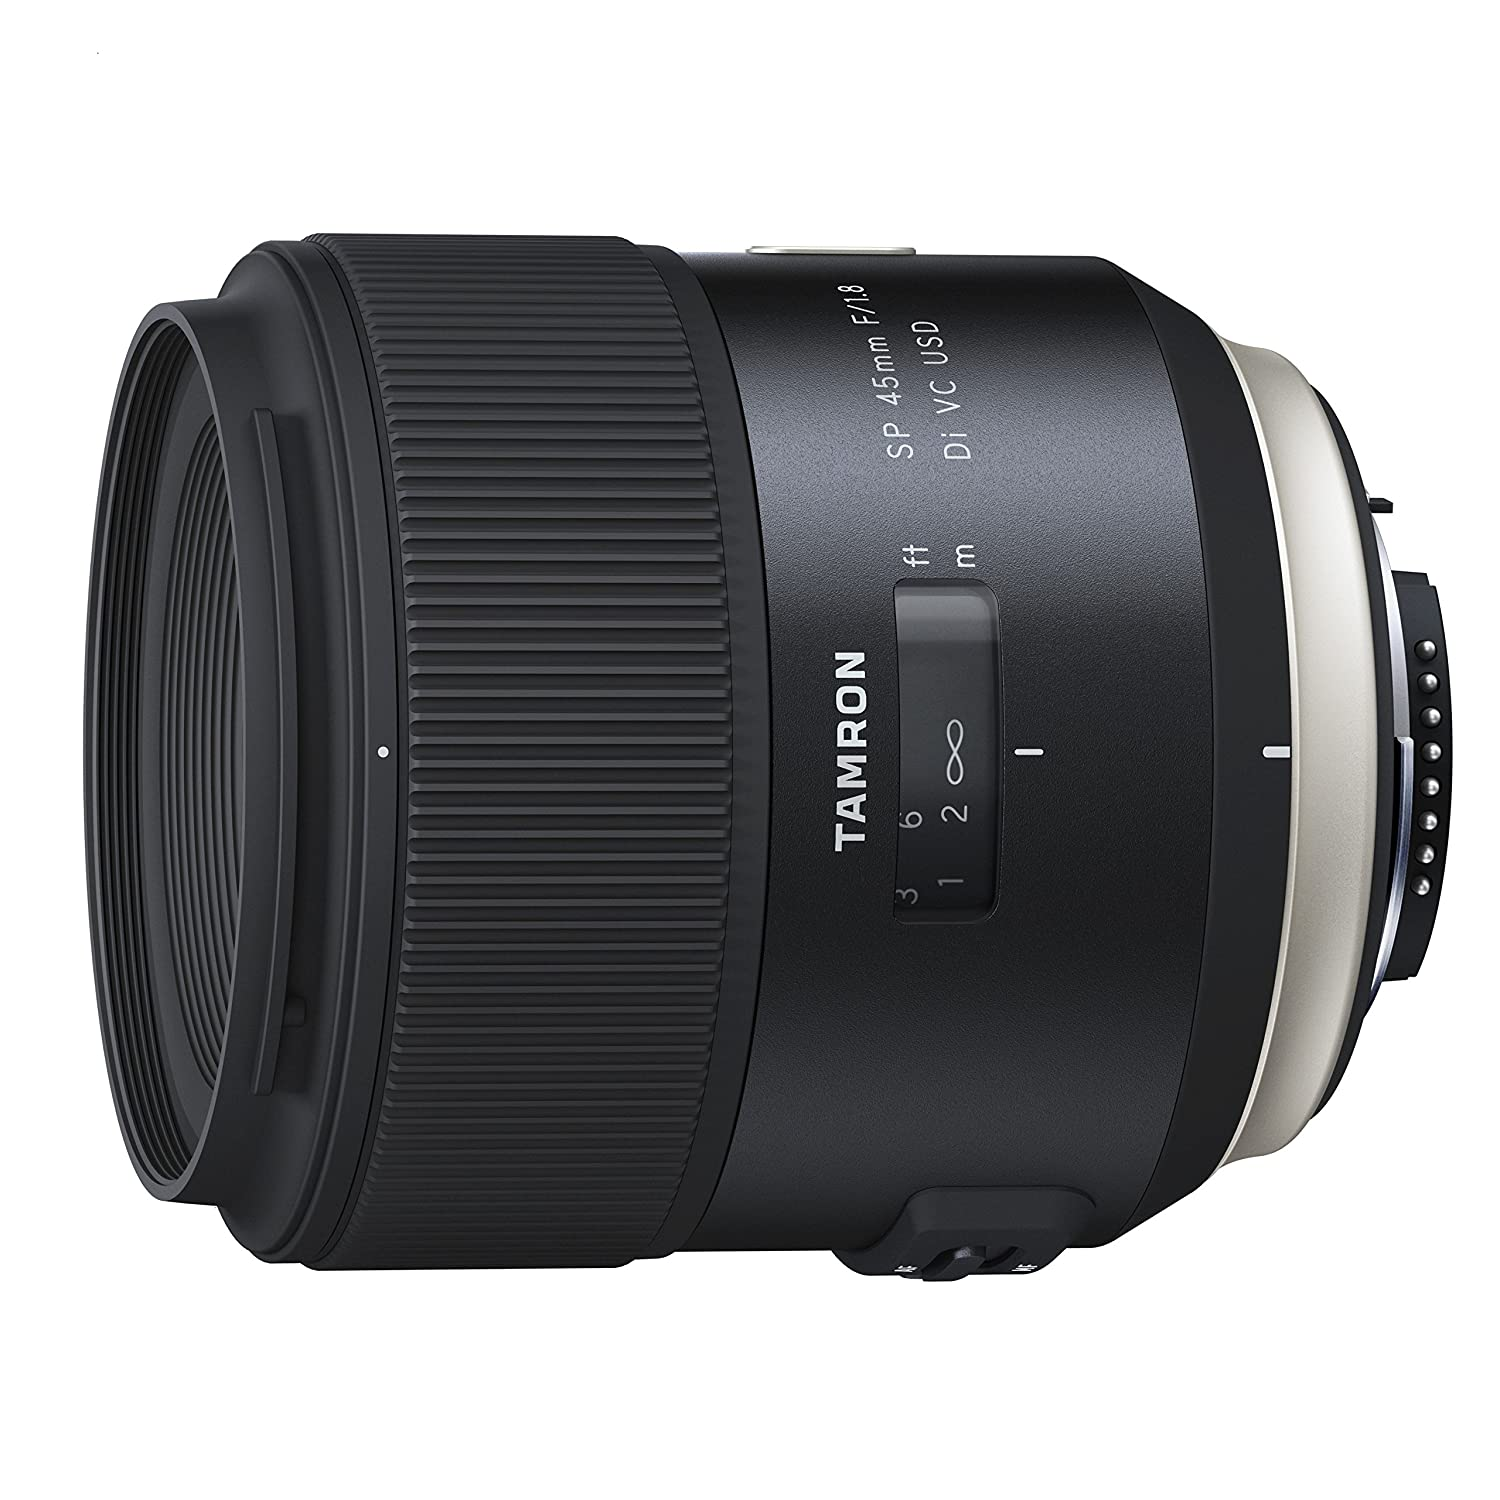 TAMRON SP 45mm F/1.8 Di VC USD Lens for Nikon DSLR Camera